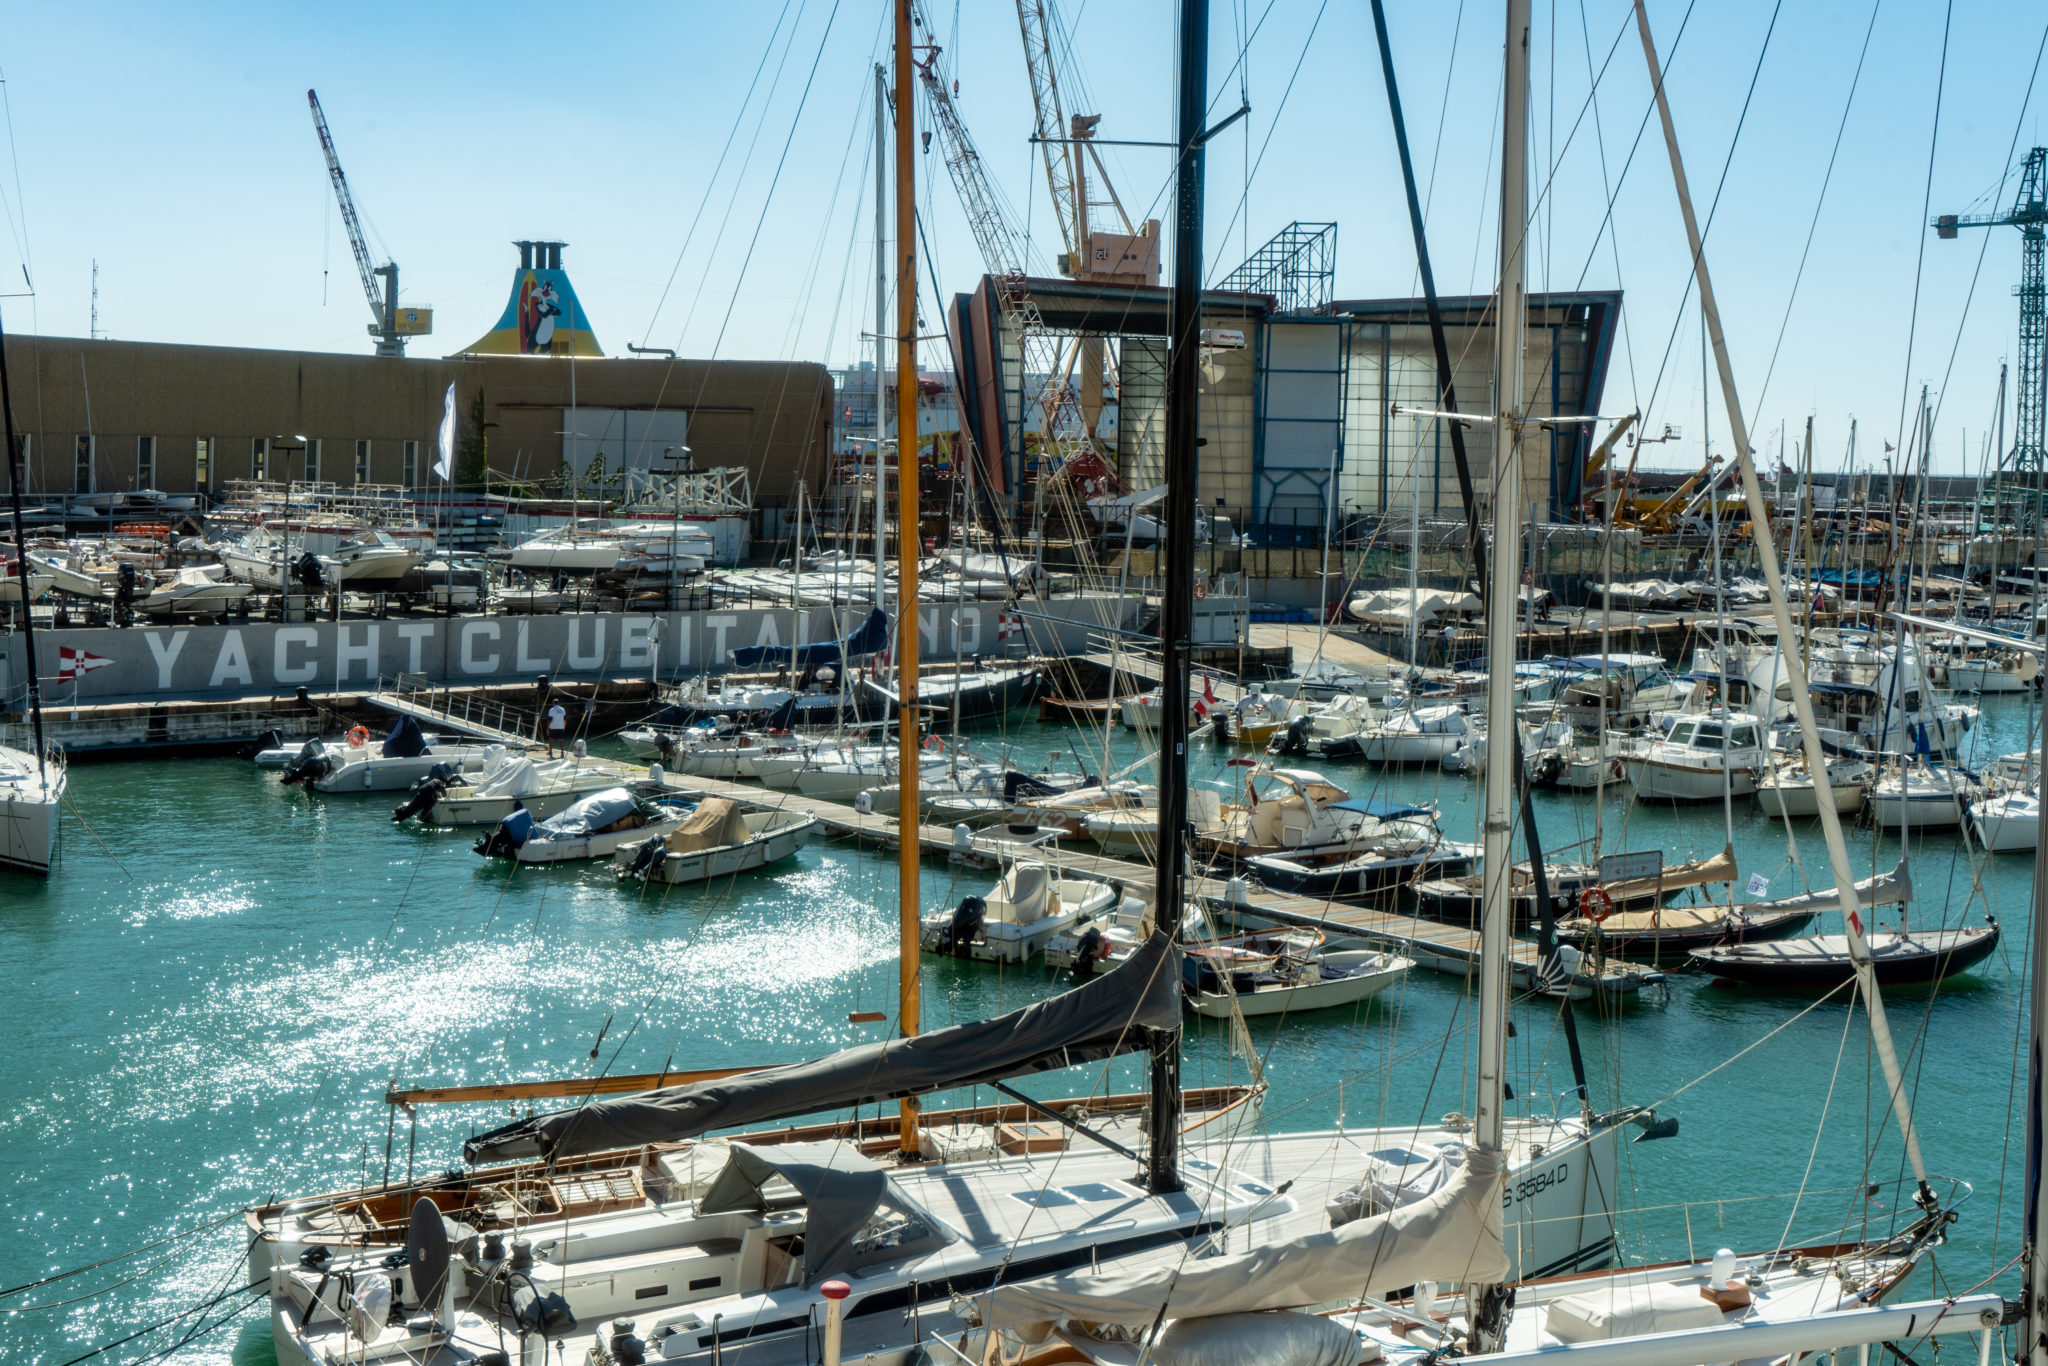 Design & innovation at the 2020 Genoa Boat Show